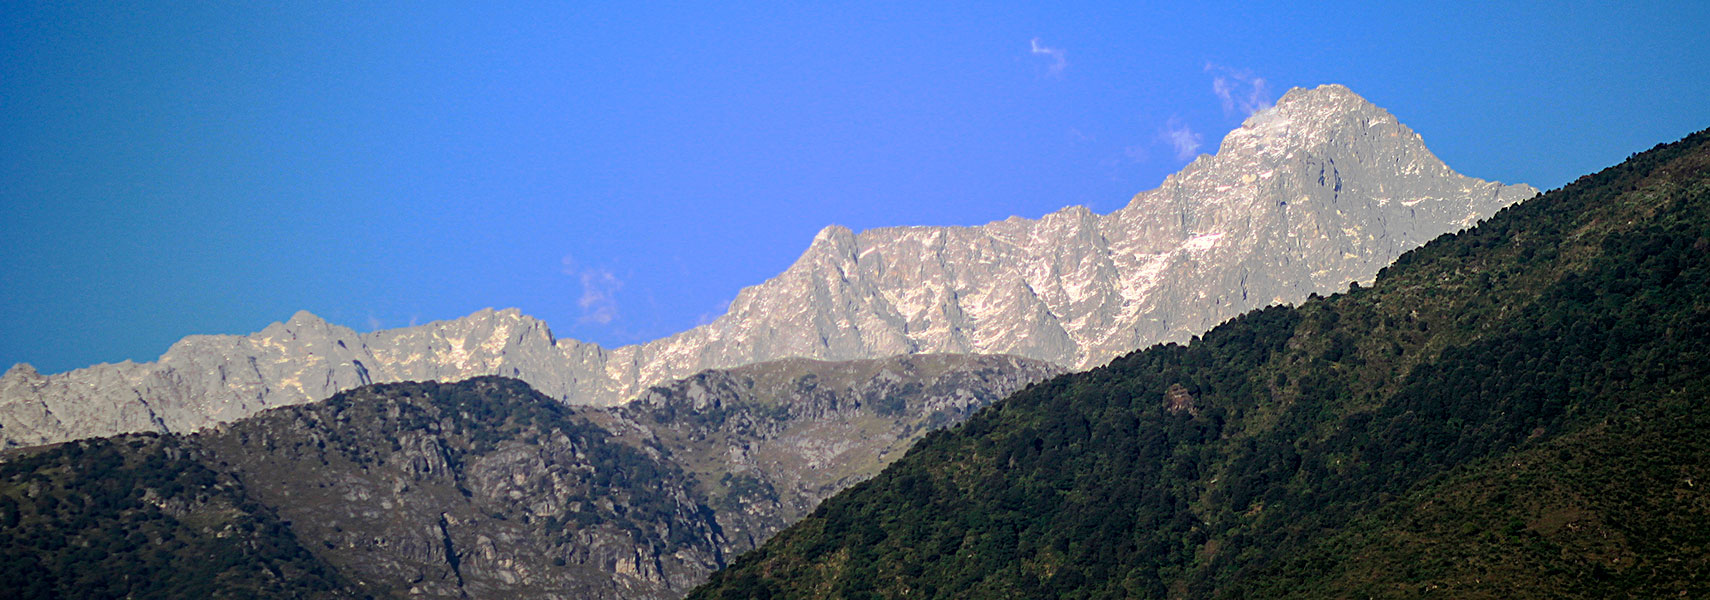 Dhauladhar mountain range, Himachal Pradesh, India